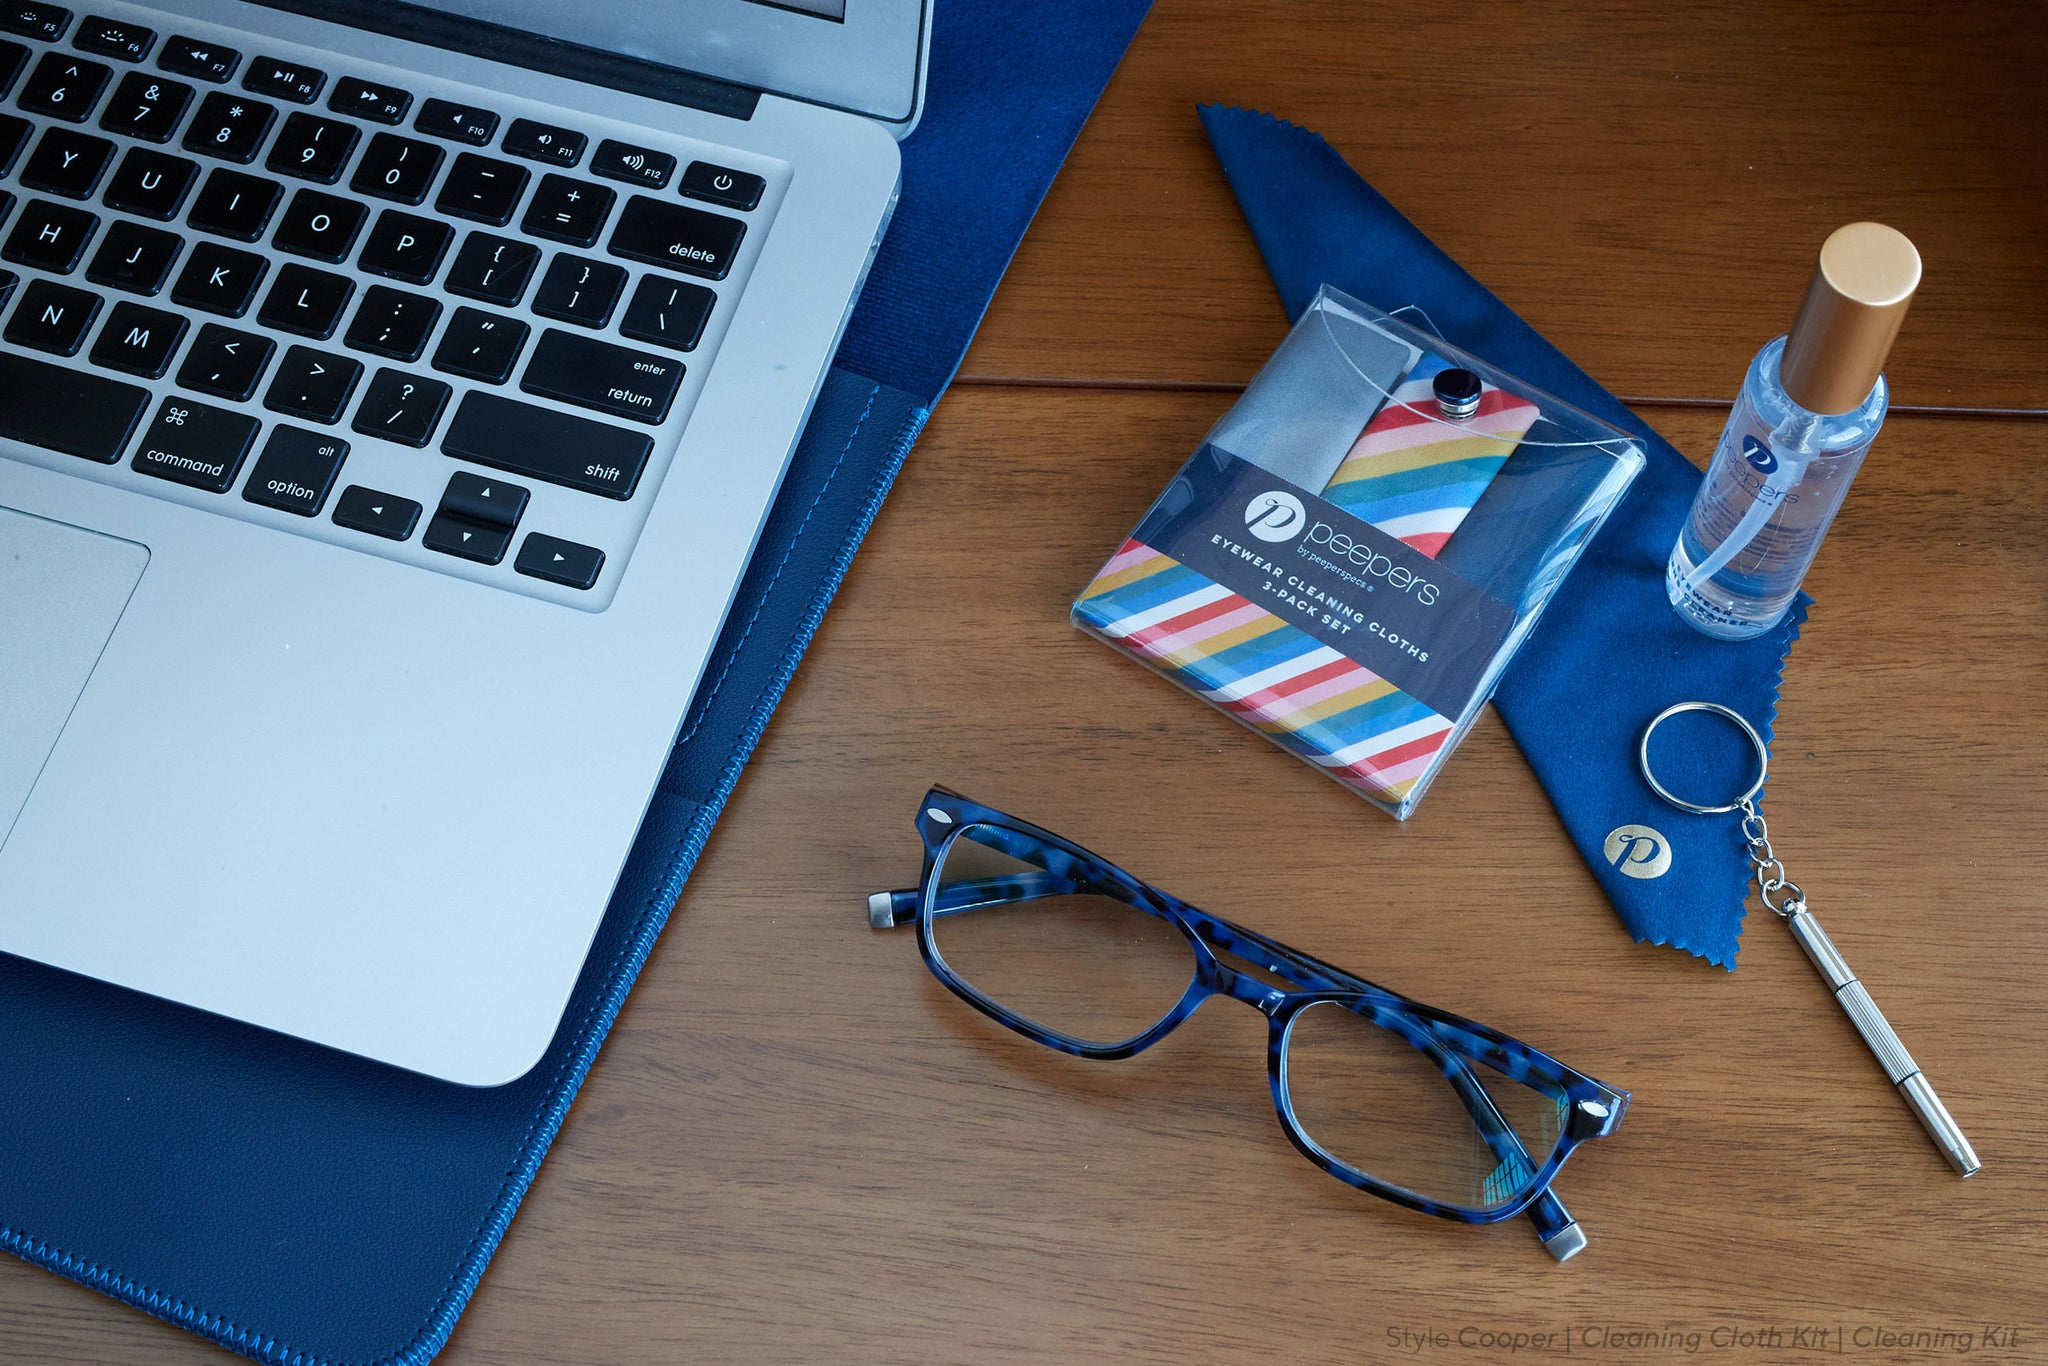 Peepers blue light reading glasses sitting next to a laptop with a cleaning cloth kit and cleaning kit